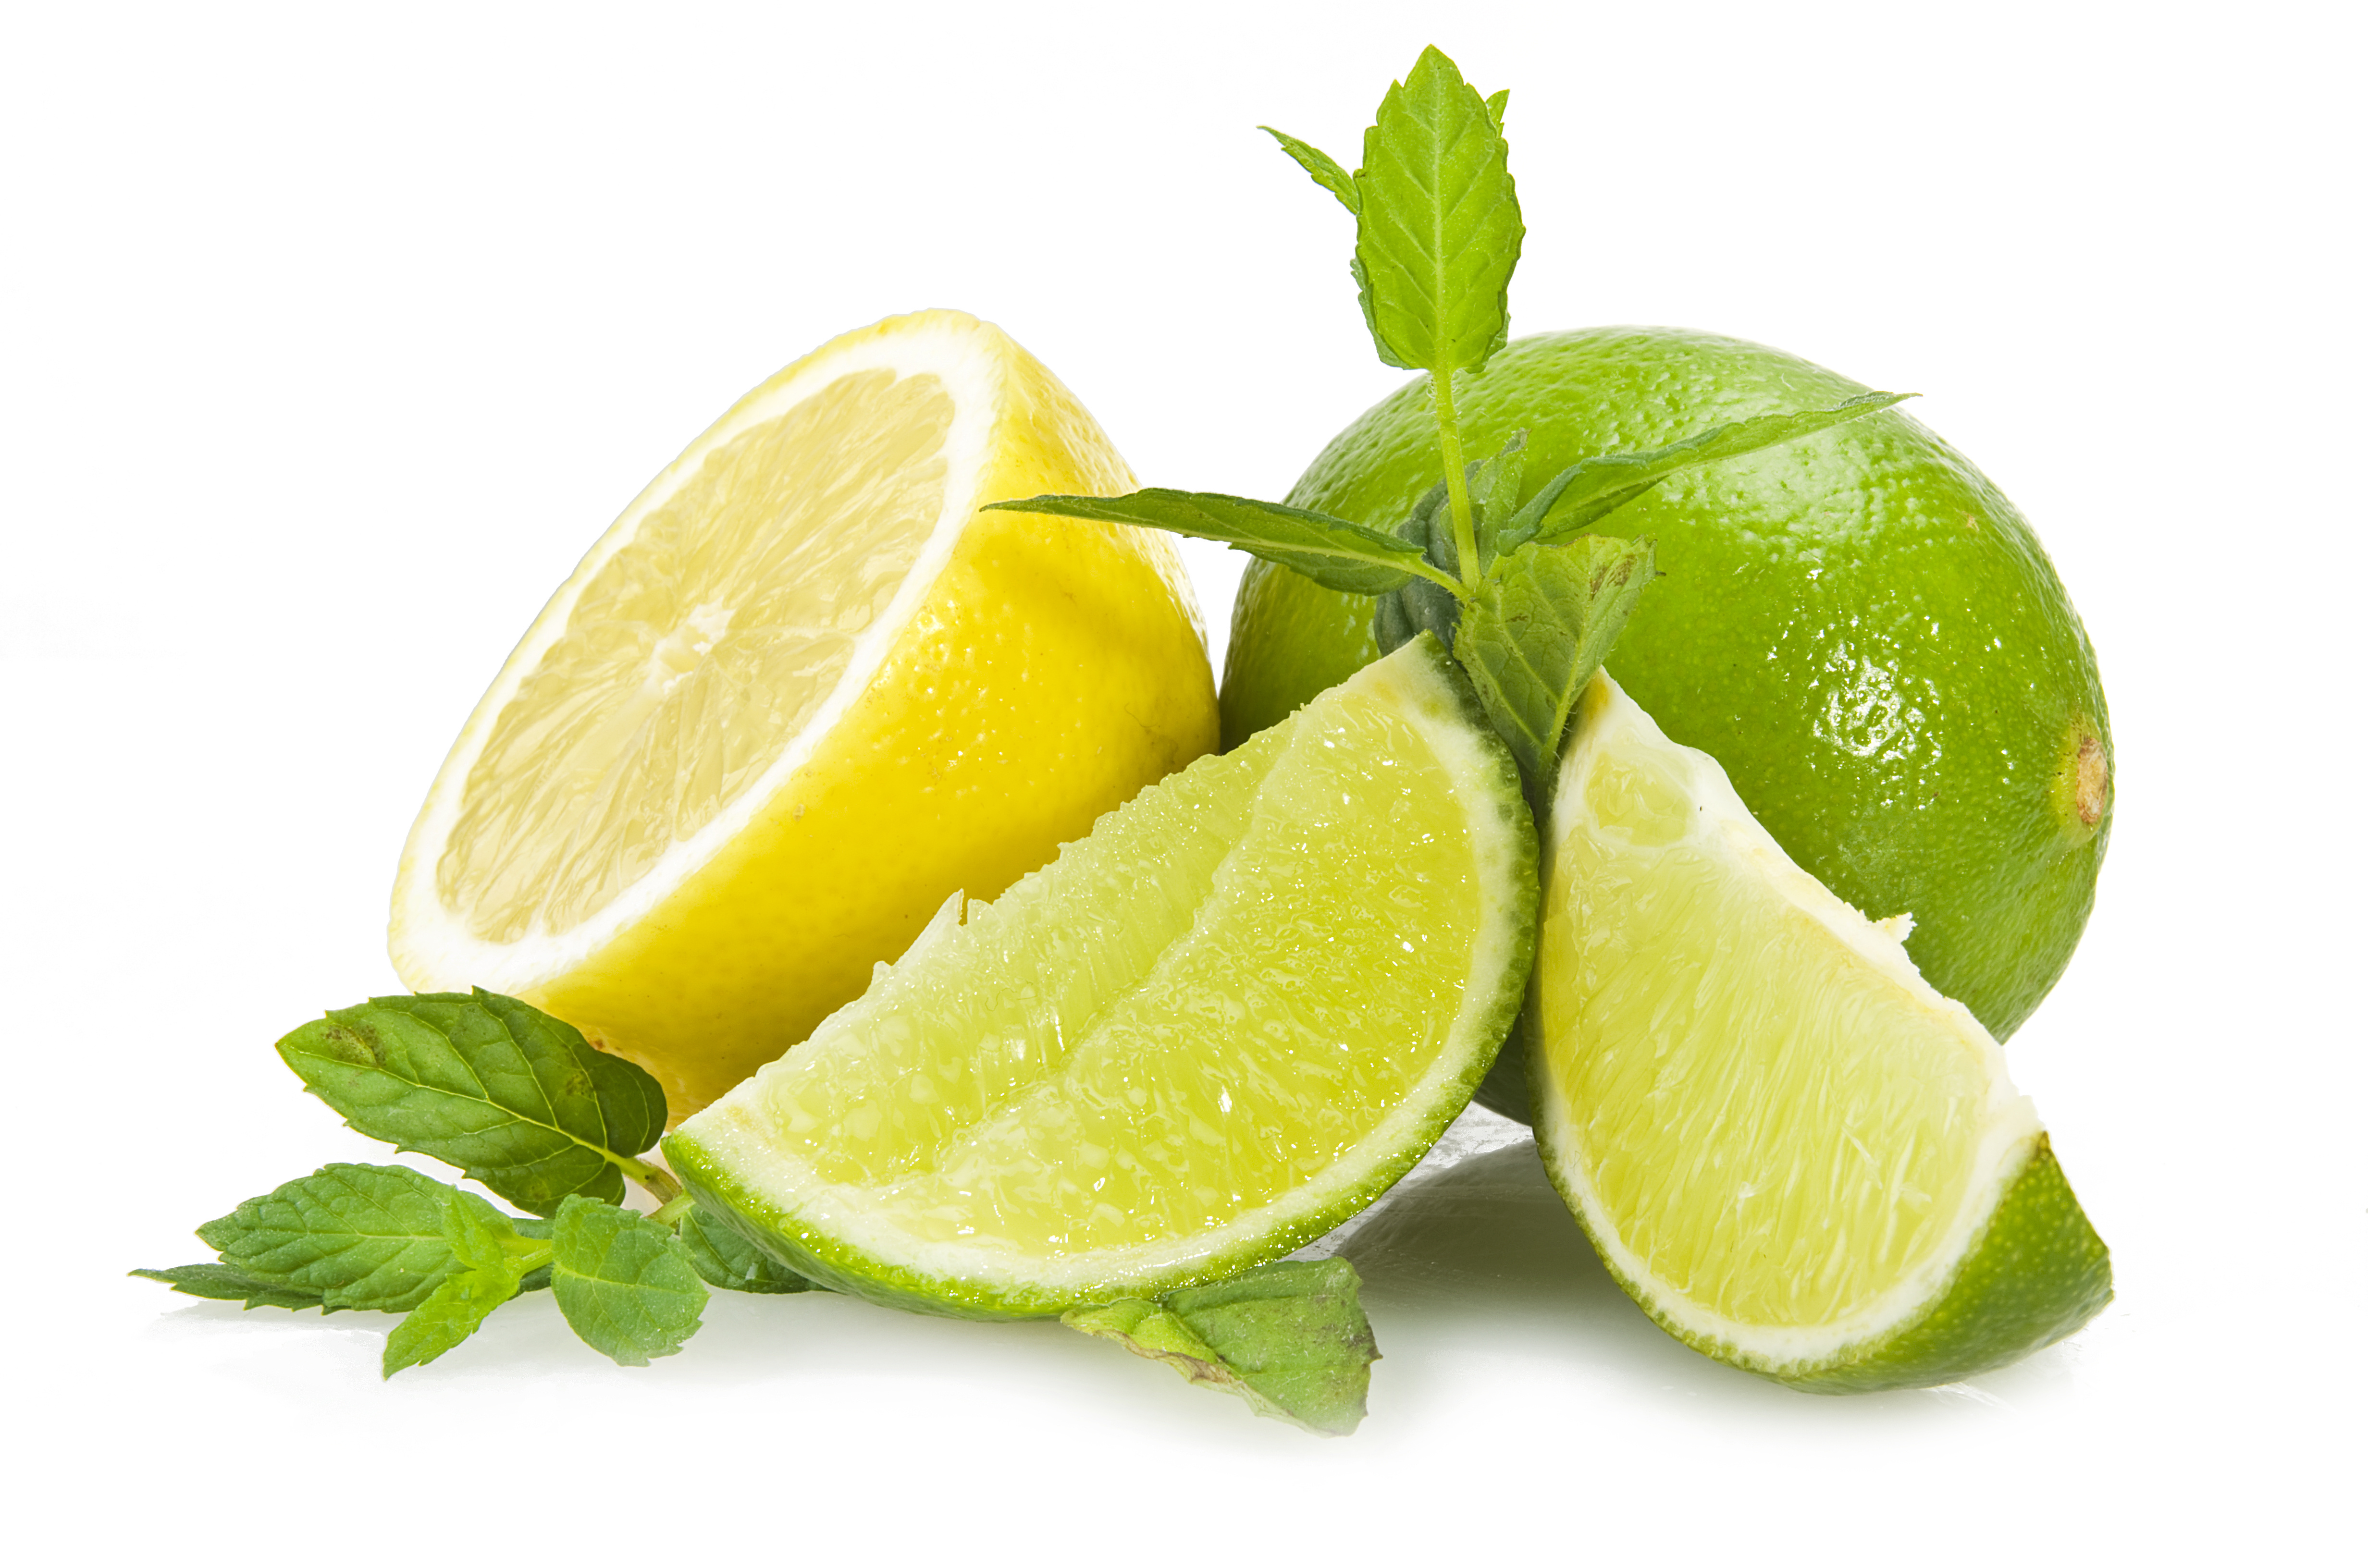 Lime,lemon and fresh leaves of mint on white - Lime HD PNG - Mint HD PNG